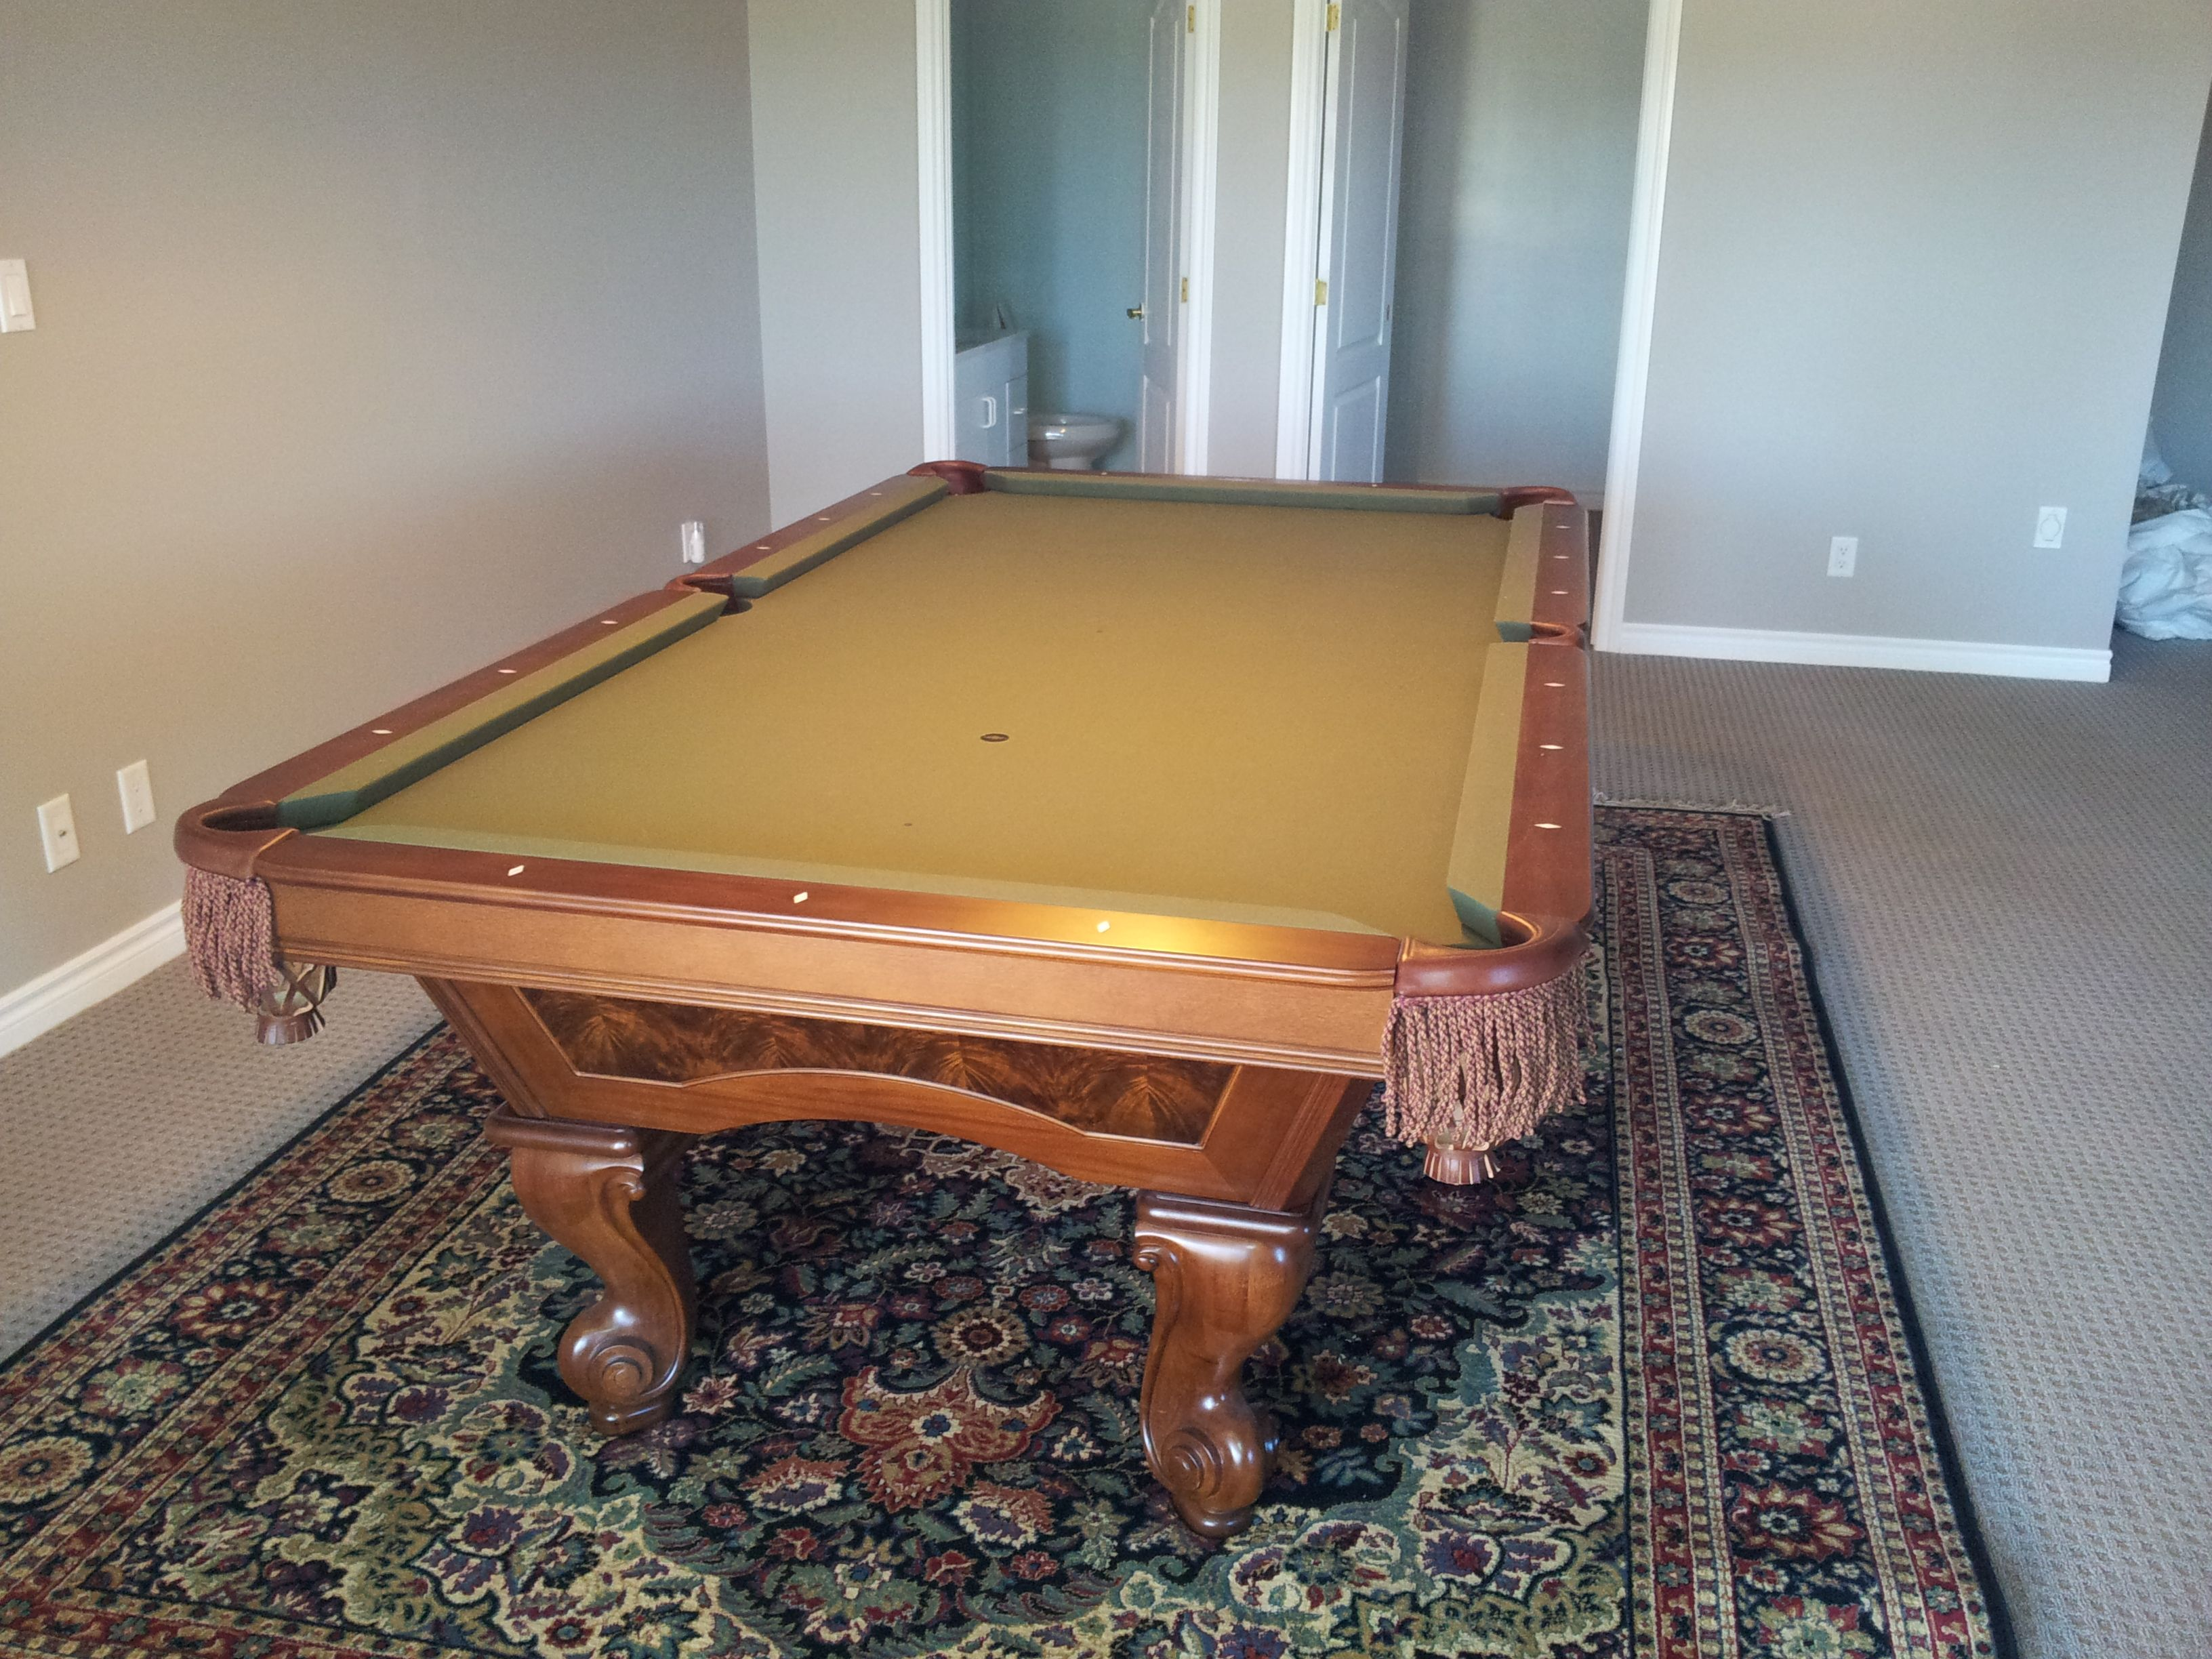 Brunswick Danbury Pool Table In Chestnut Finish. The Customer Recently Had  Us Dismantle The Table